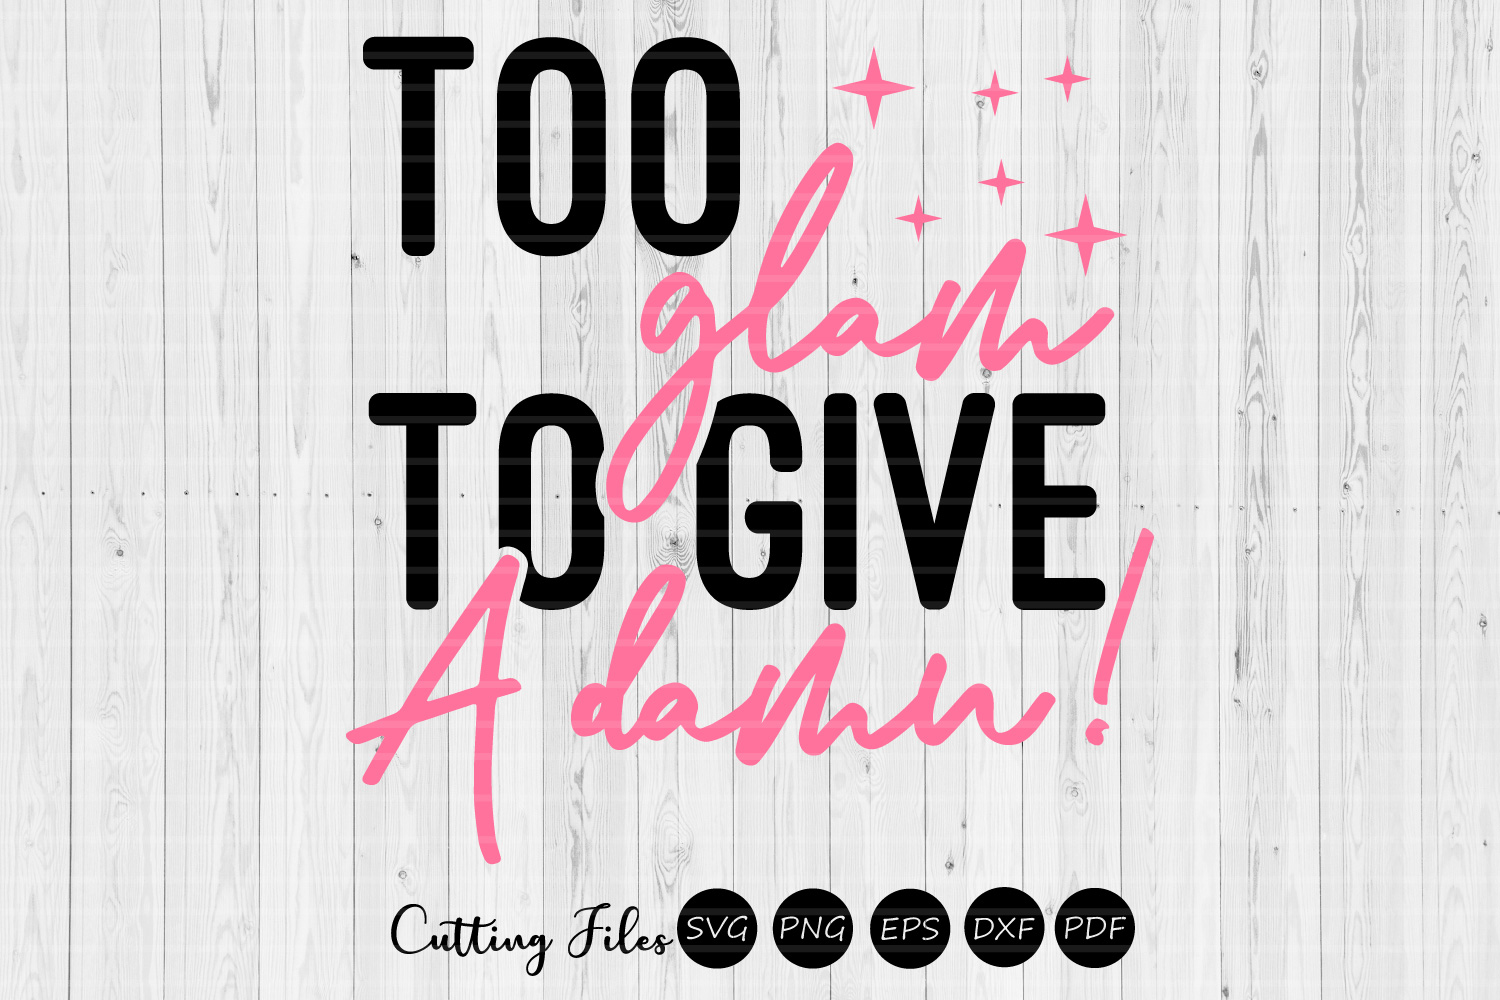 Download Free Too Glam To Give A Damn Sassy Svg Graphic By Hd Art Workshop Creative Fabrica for Cricut Explore, Silhouette and other cutting machines.